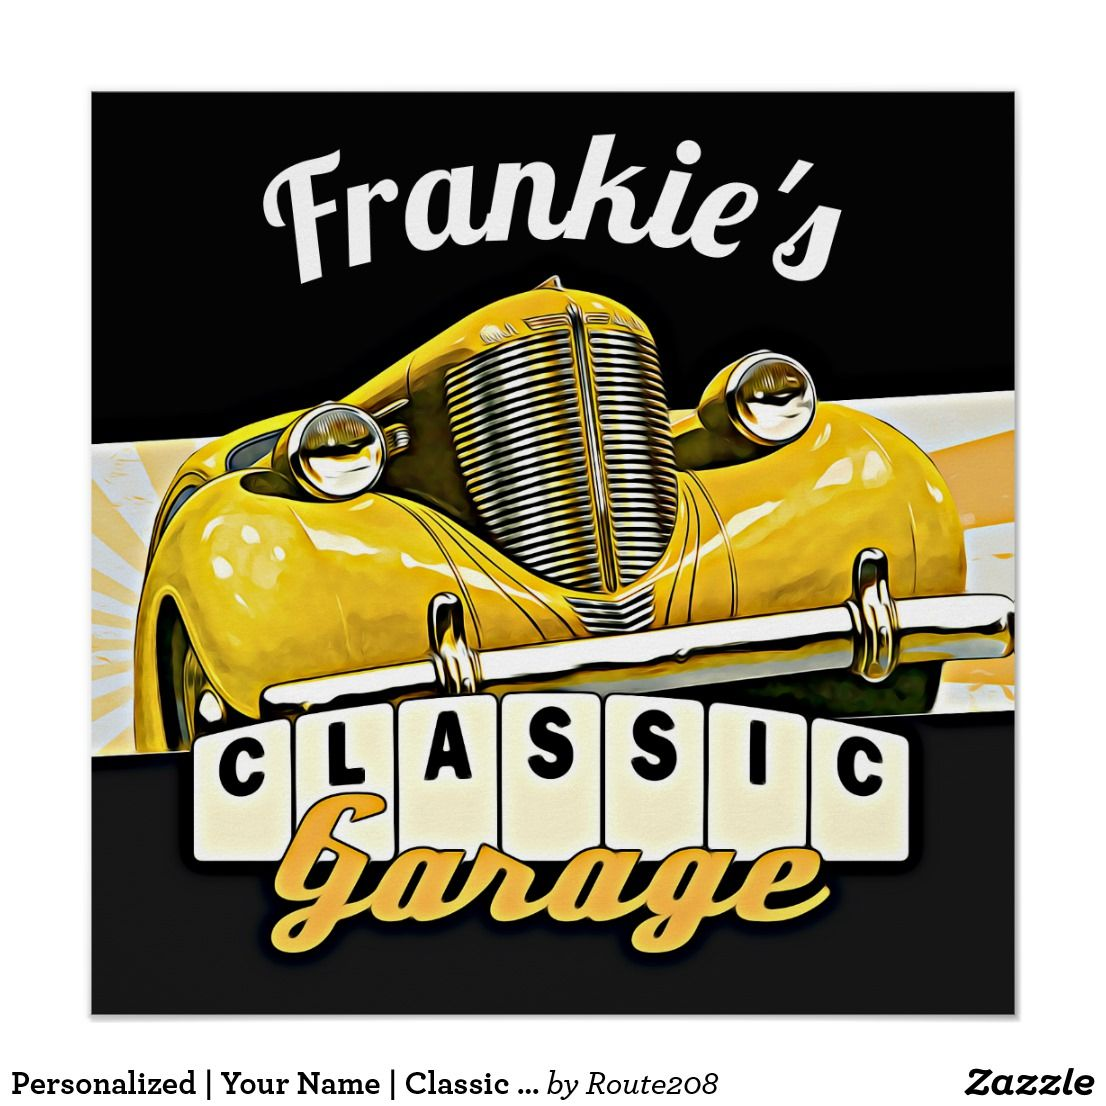 Personalized   Your Name   Classic Car Garage Poster   Classic car ...